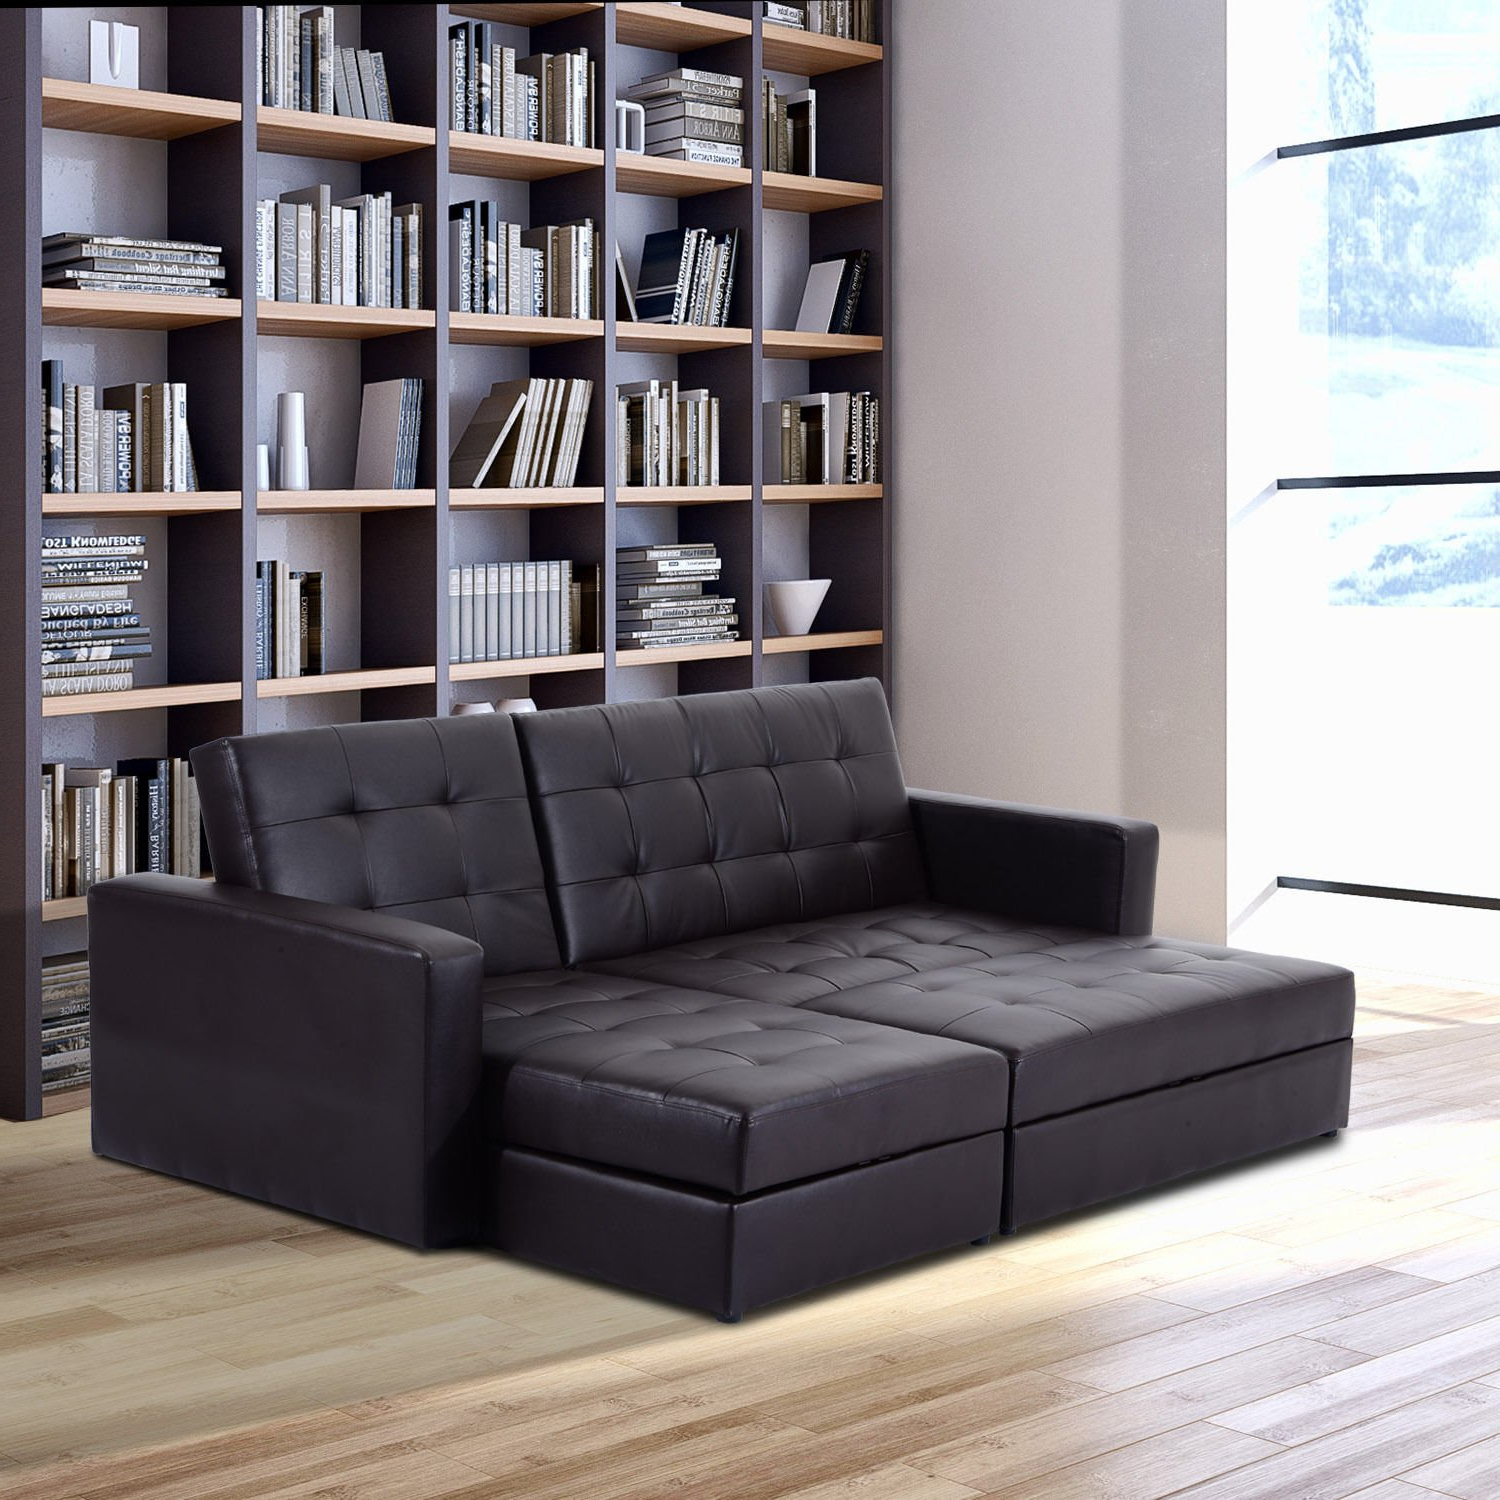 Storage+Sleeper+Couch+Sofa+Bed – Simply Style Regarding Best And Newest Liberty Sectional Futon Sofas With Storage (View 18 of 25)